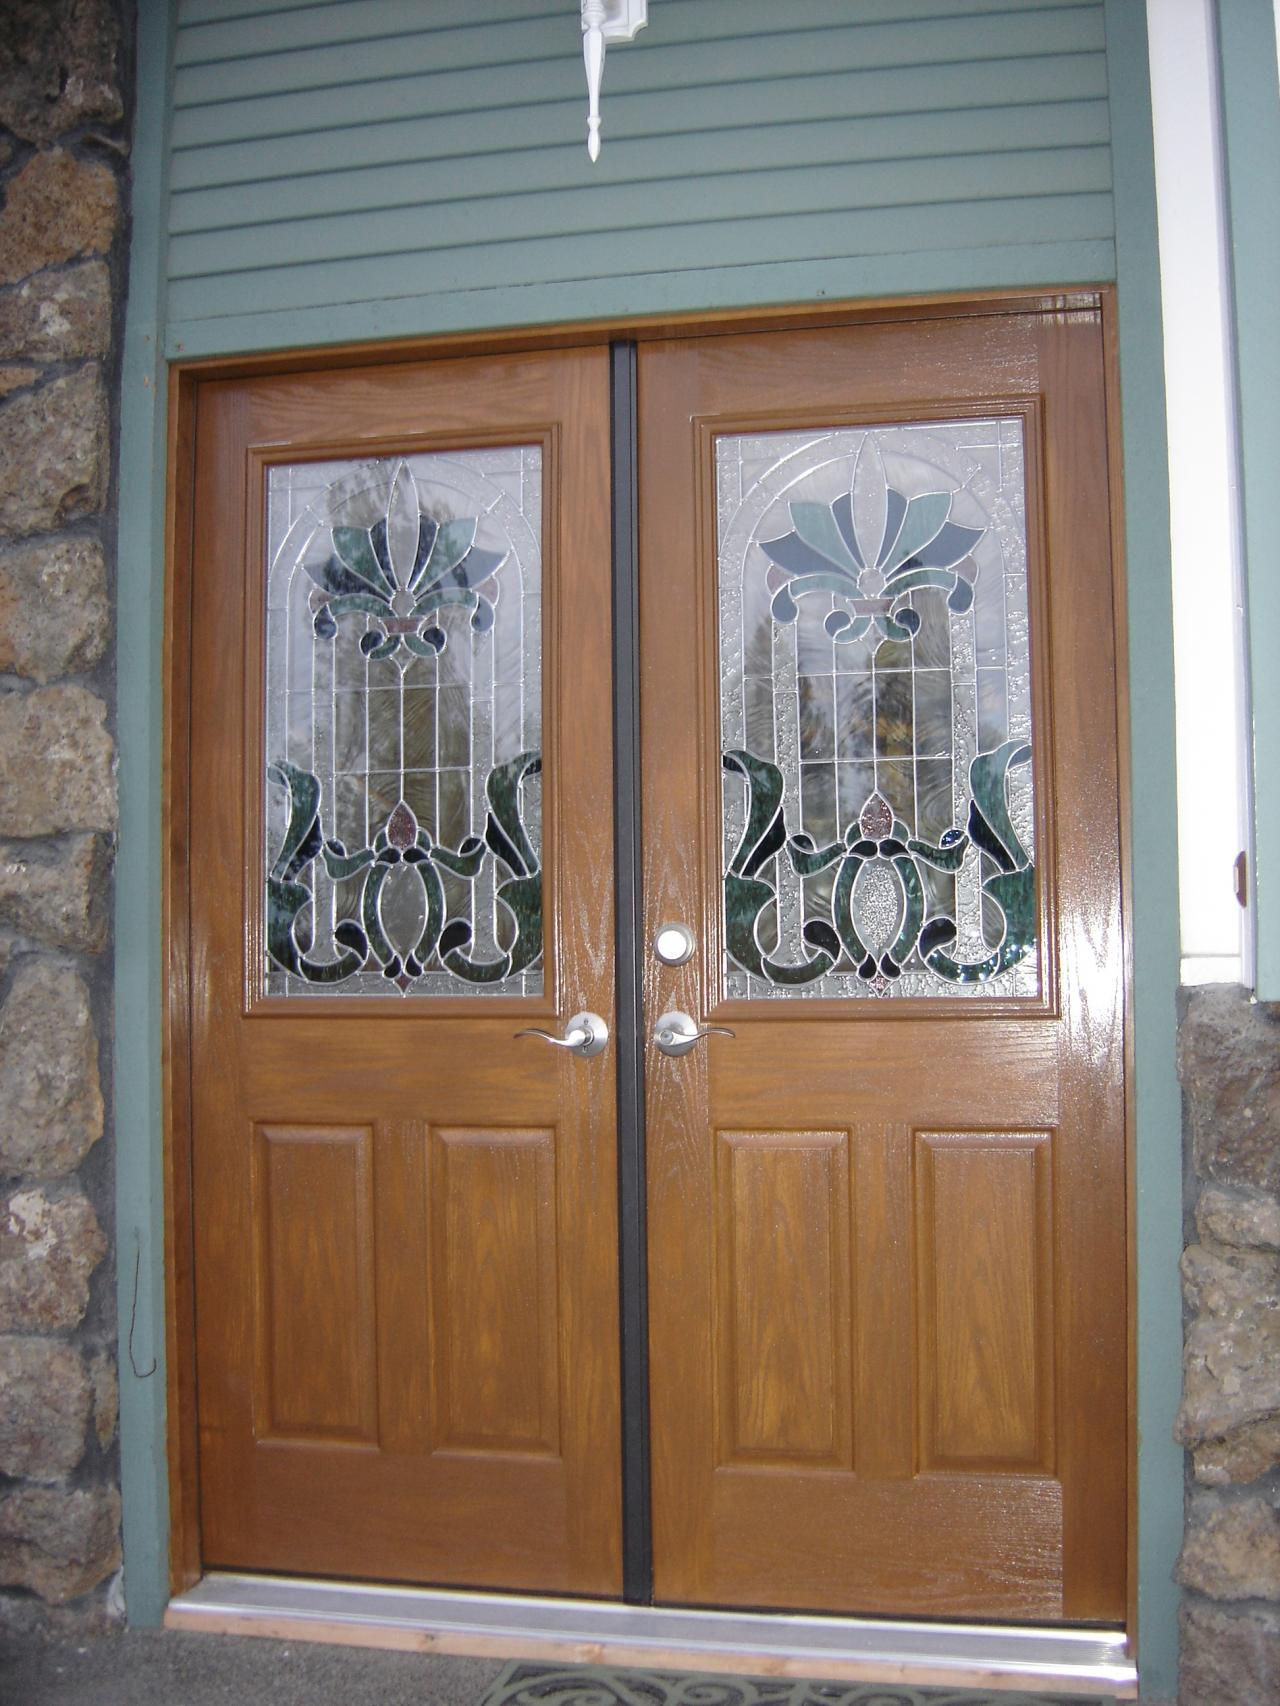 1706 #71492E 1st Impressions More Than Doors Double Door Entry wallpaper Masonite Fiberglass Exterior Doors 43651280